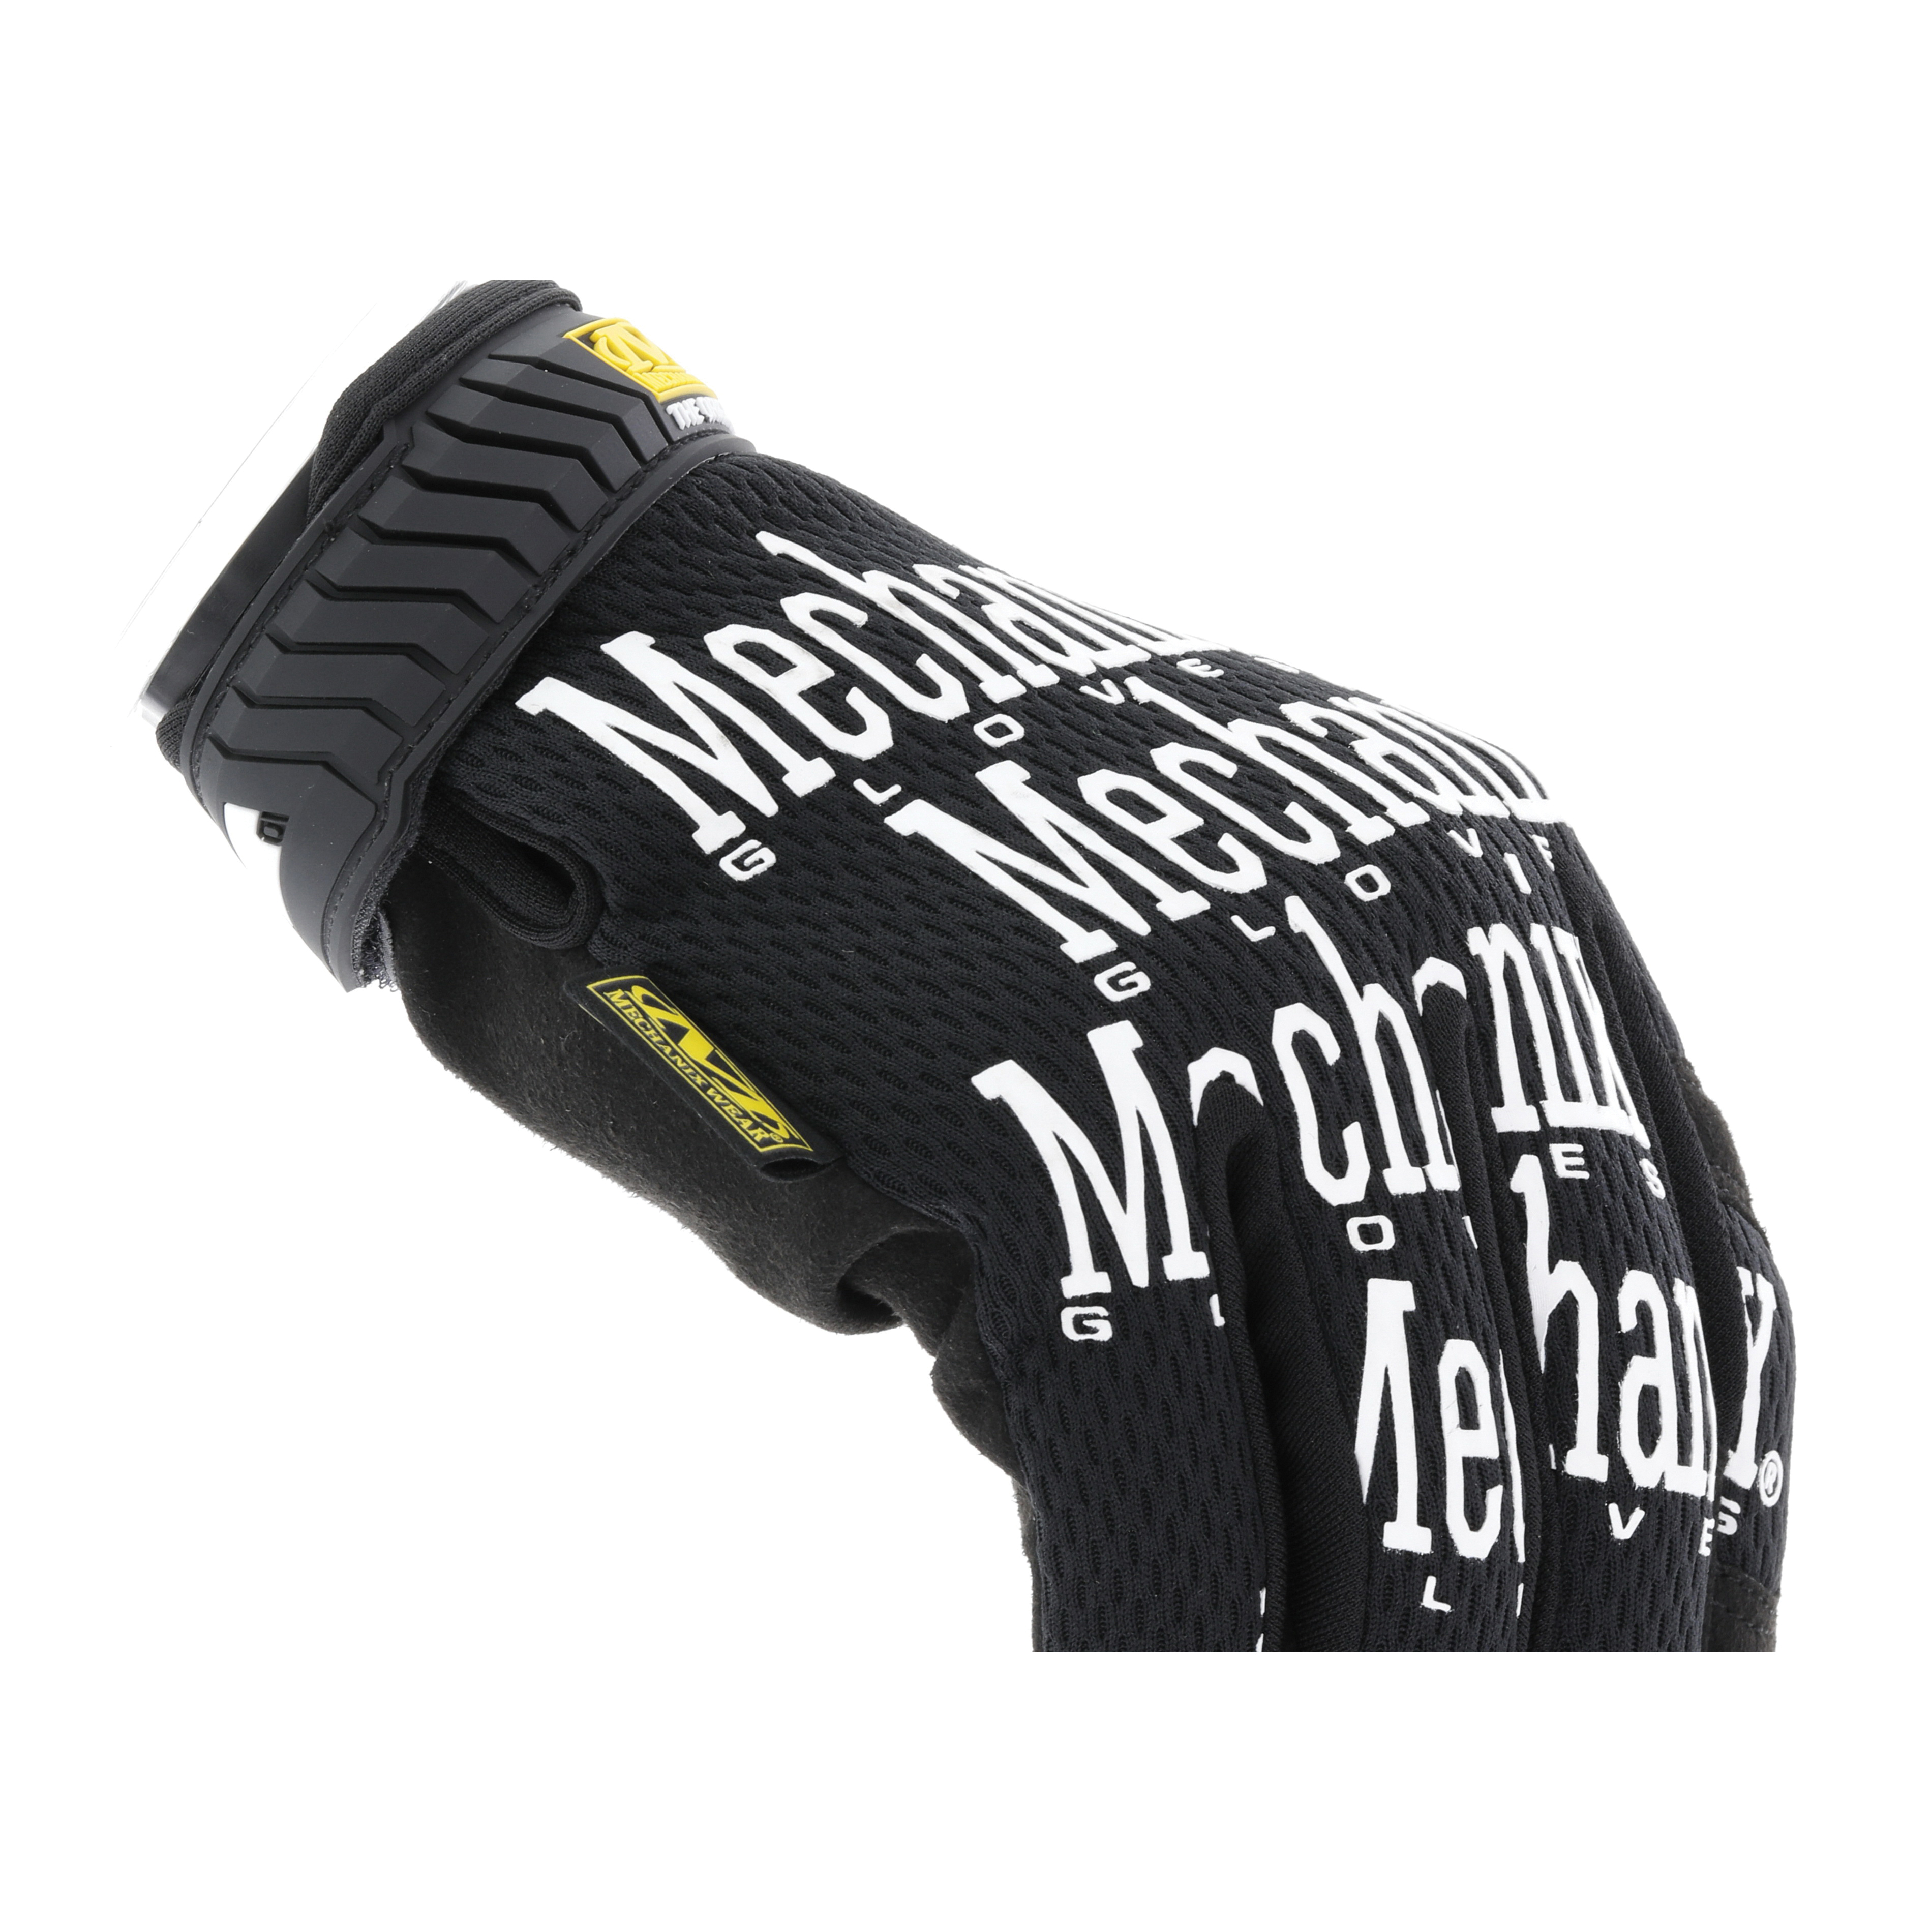 Mechanix Wear® MG-05-007 The Original MG General Purpose Gloves, Utility, Full Finger/Seamless/Wing Thumb Style, XS/SZ 7, Synthetic Leather/Spandex® Palm, Nylon, Black, Hook and Loop Cuff, Foam Lining